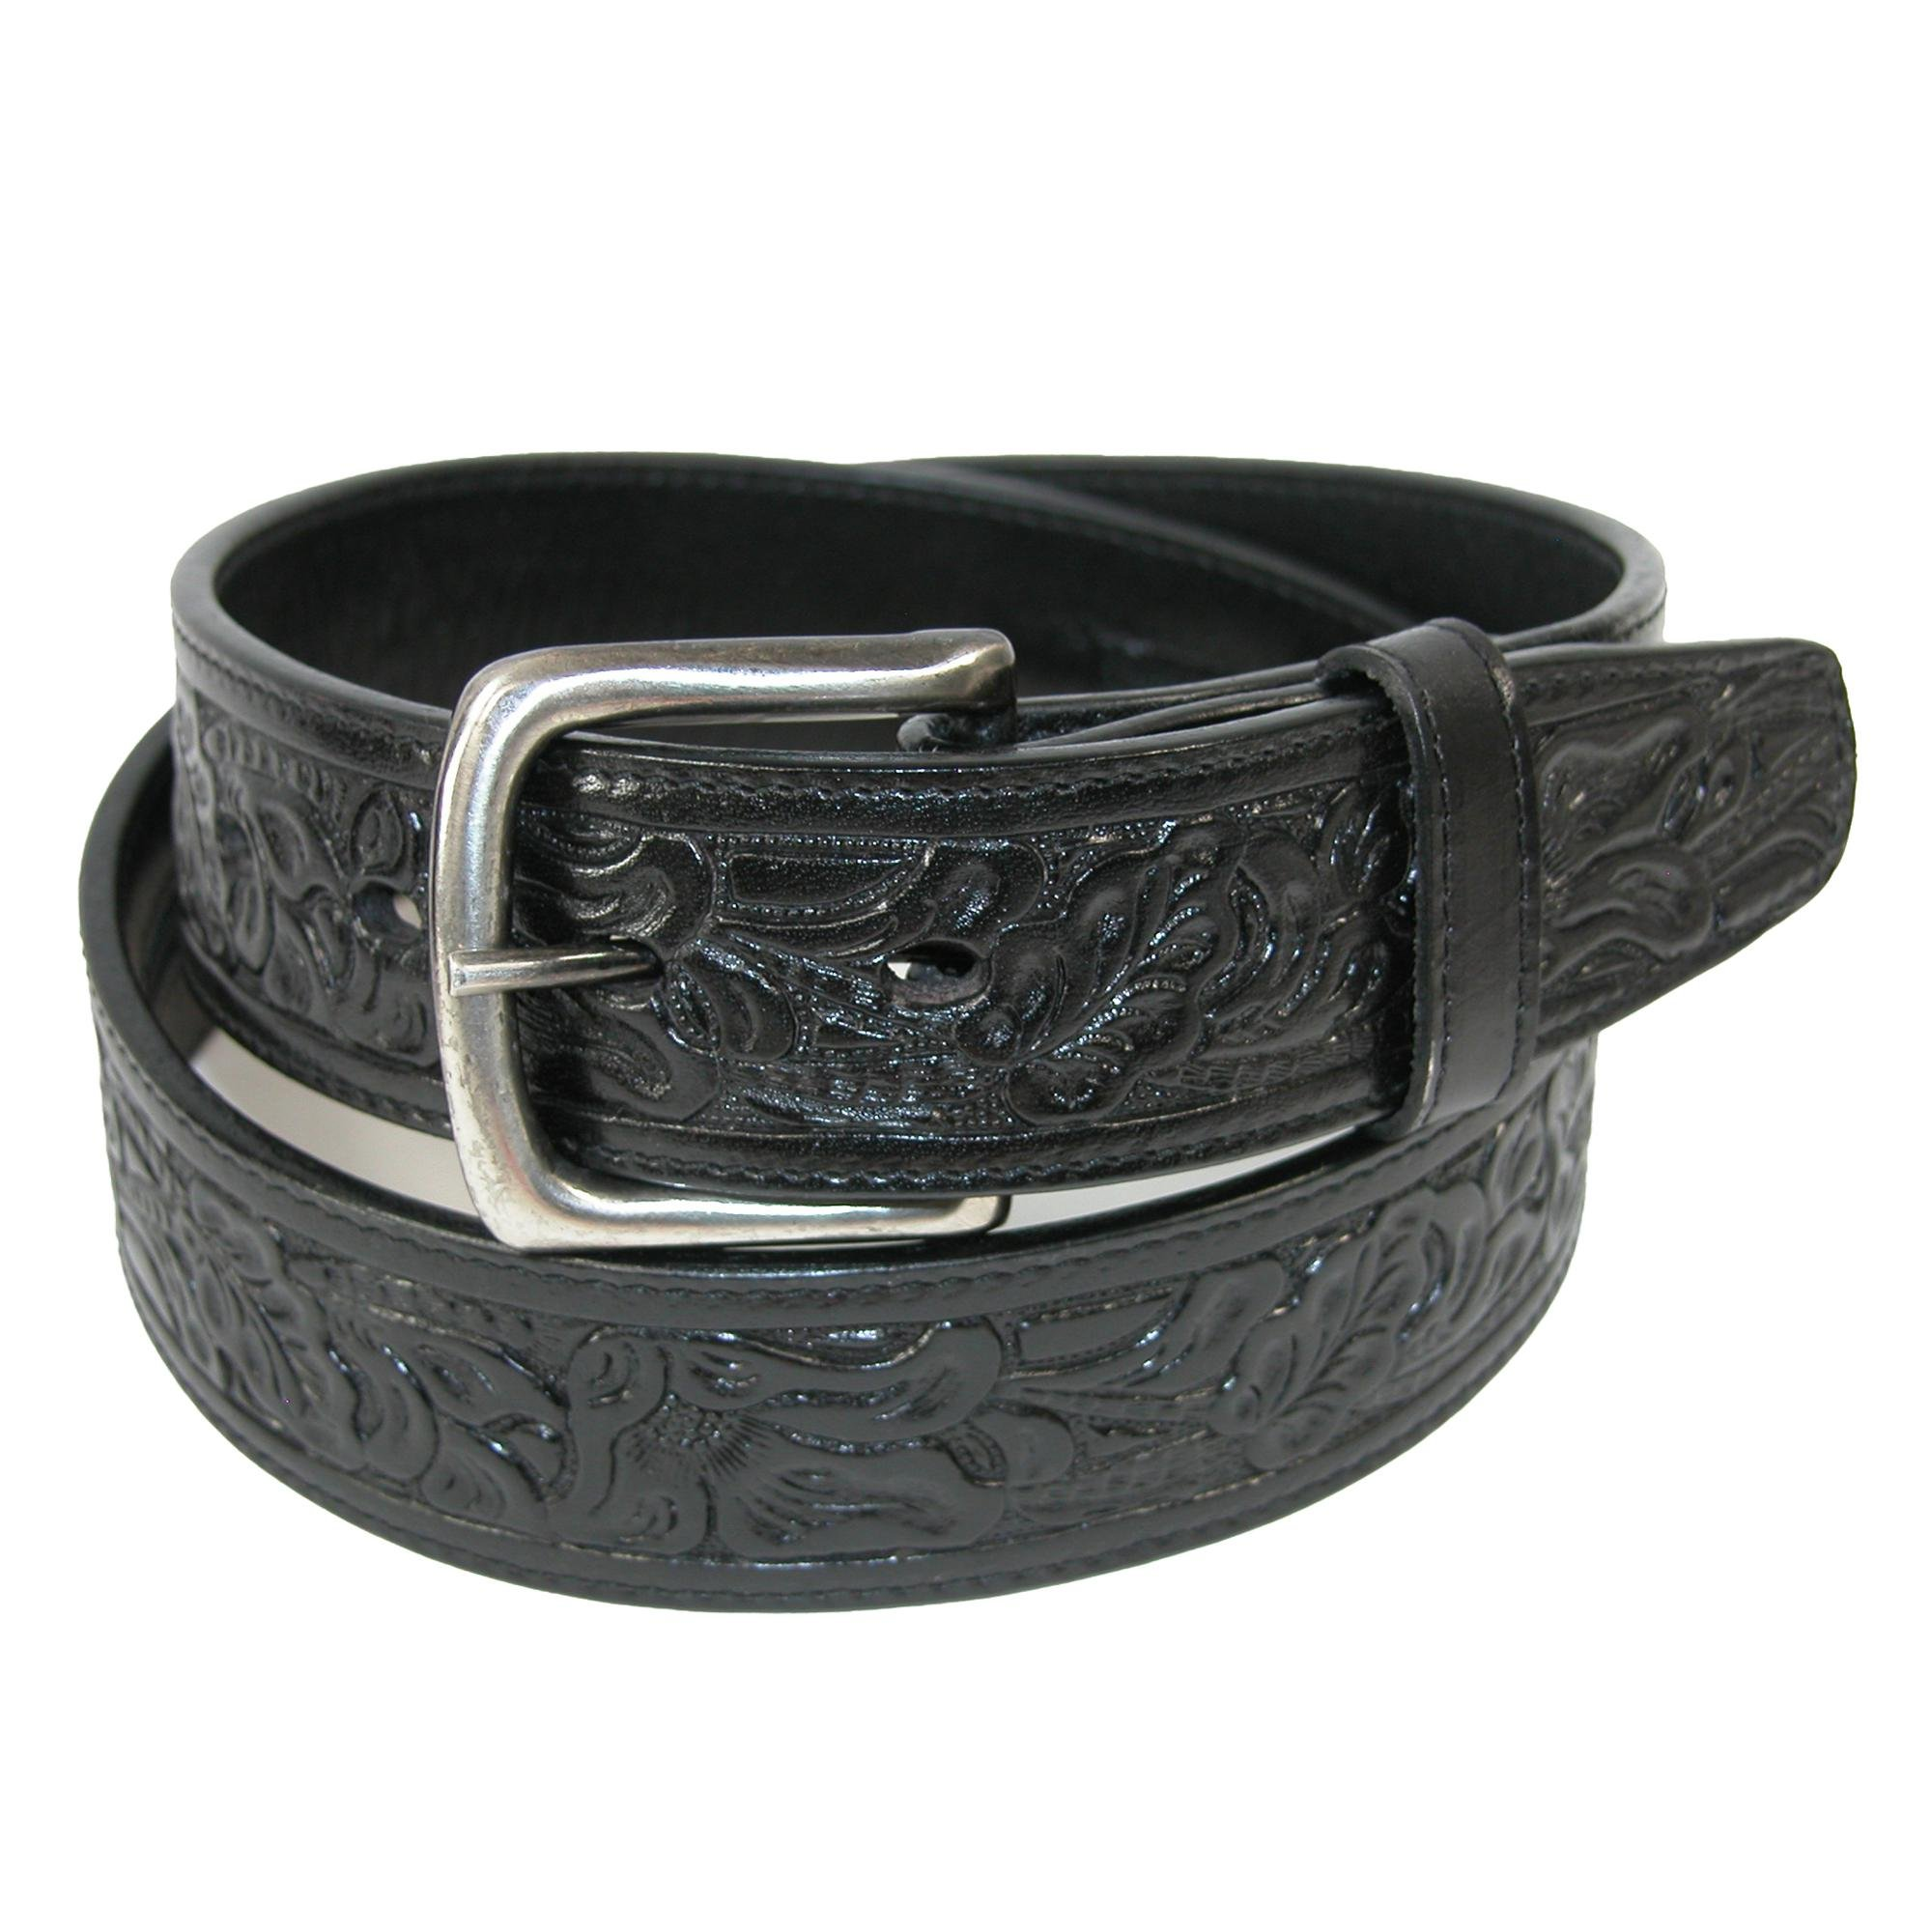 CTM Embossed Leather Money Belt with Removable Buckle, 34, Black